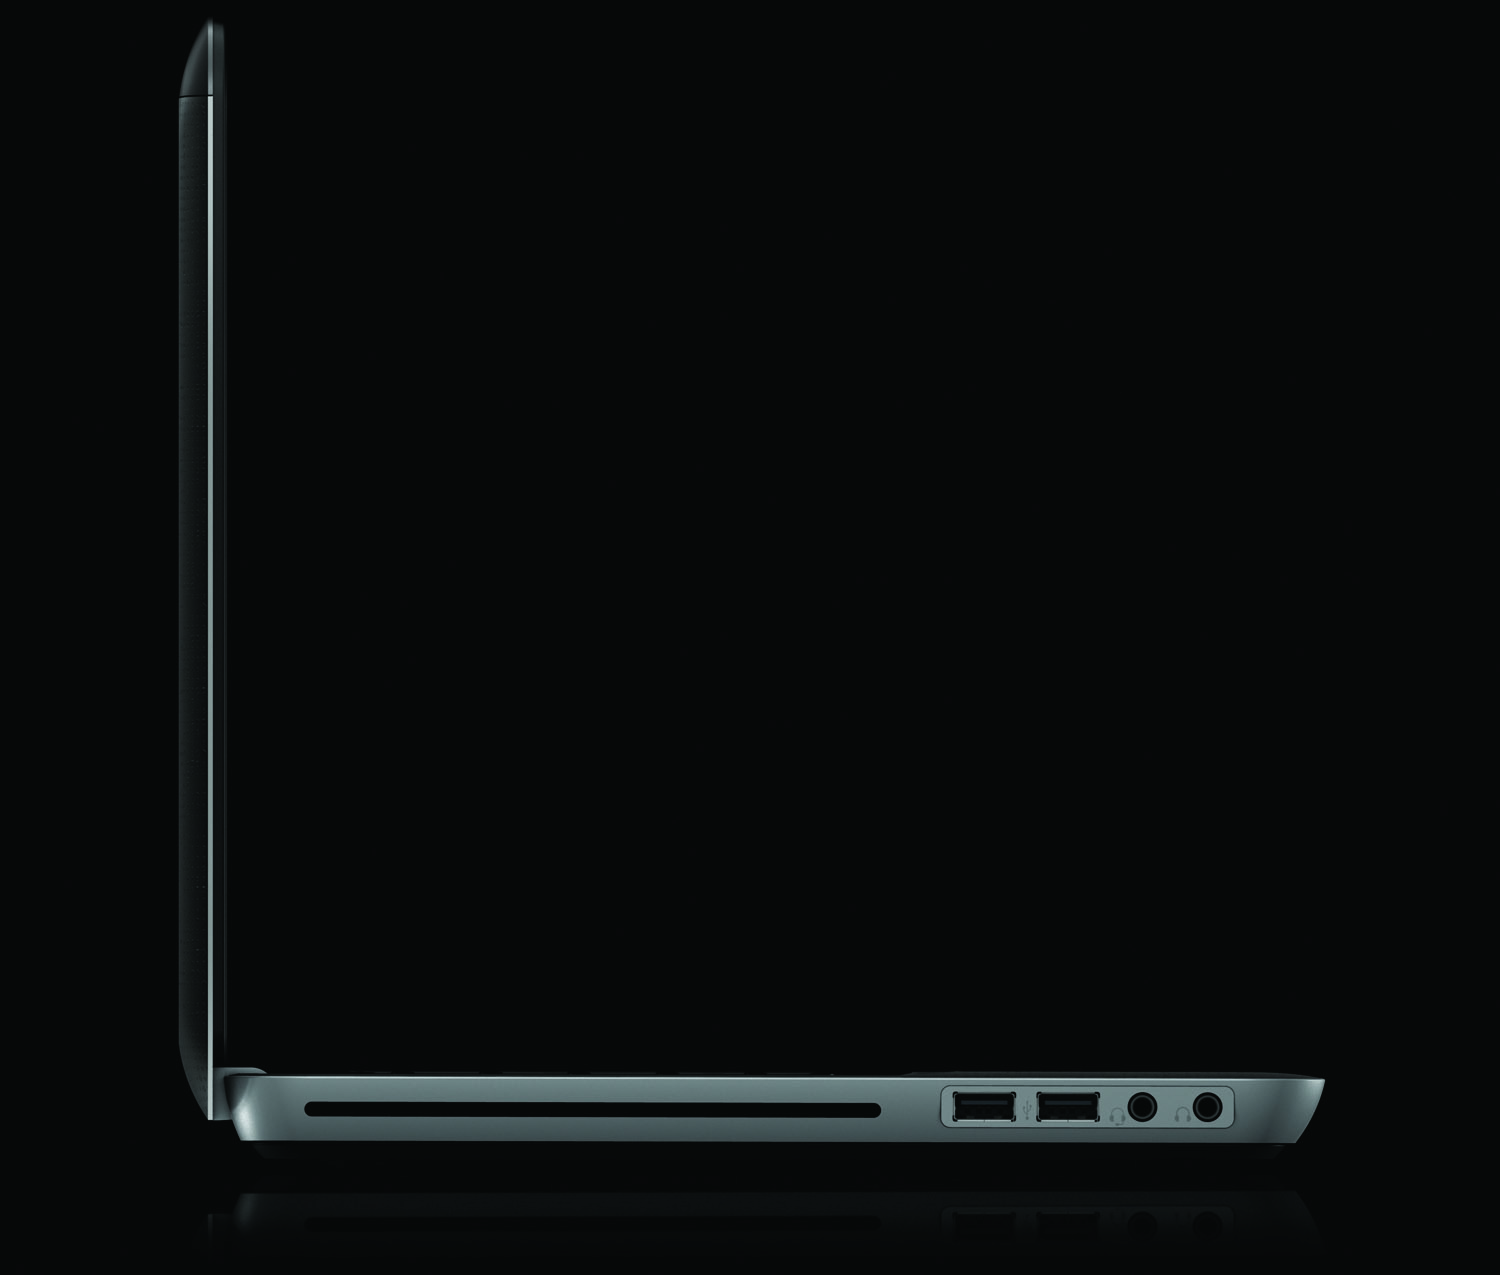 HP Envy 14, right profile on black